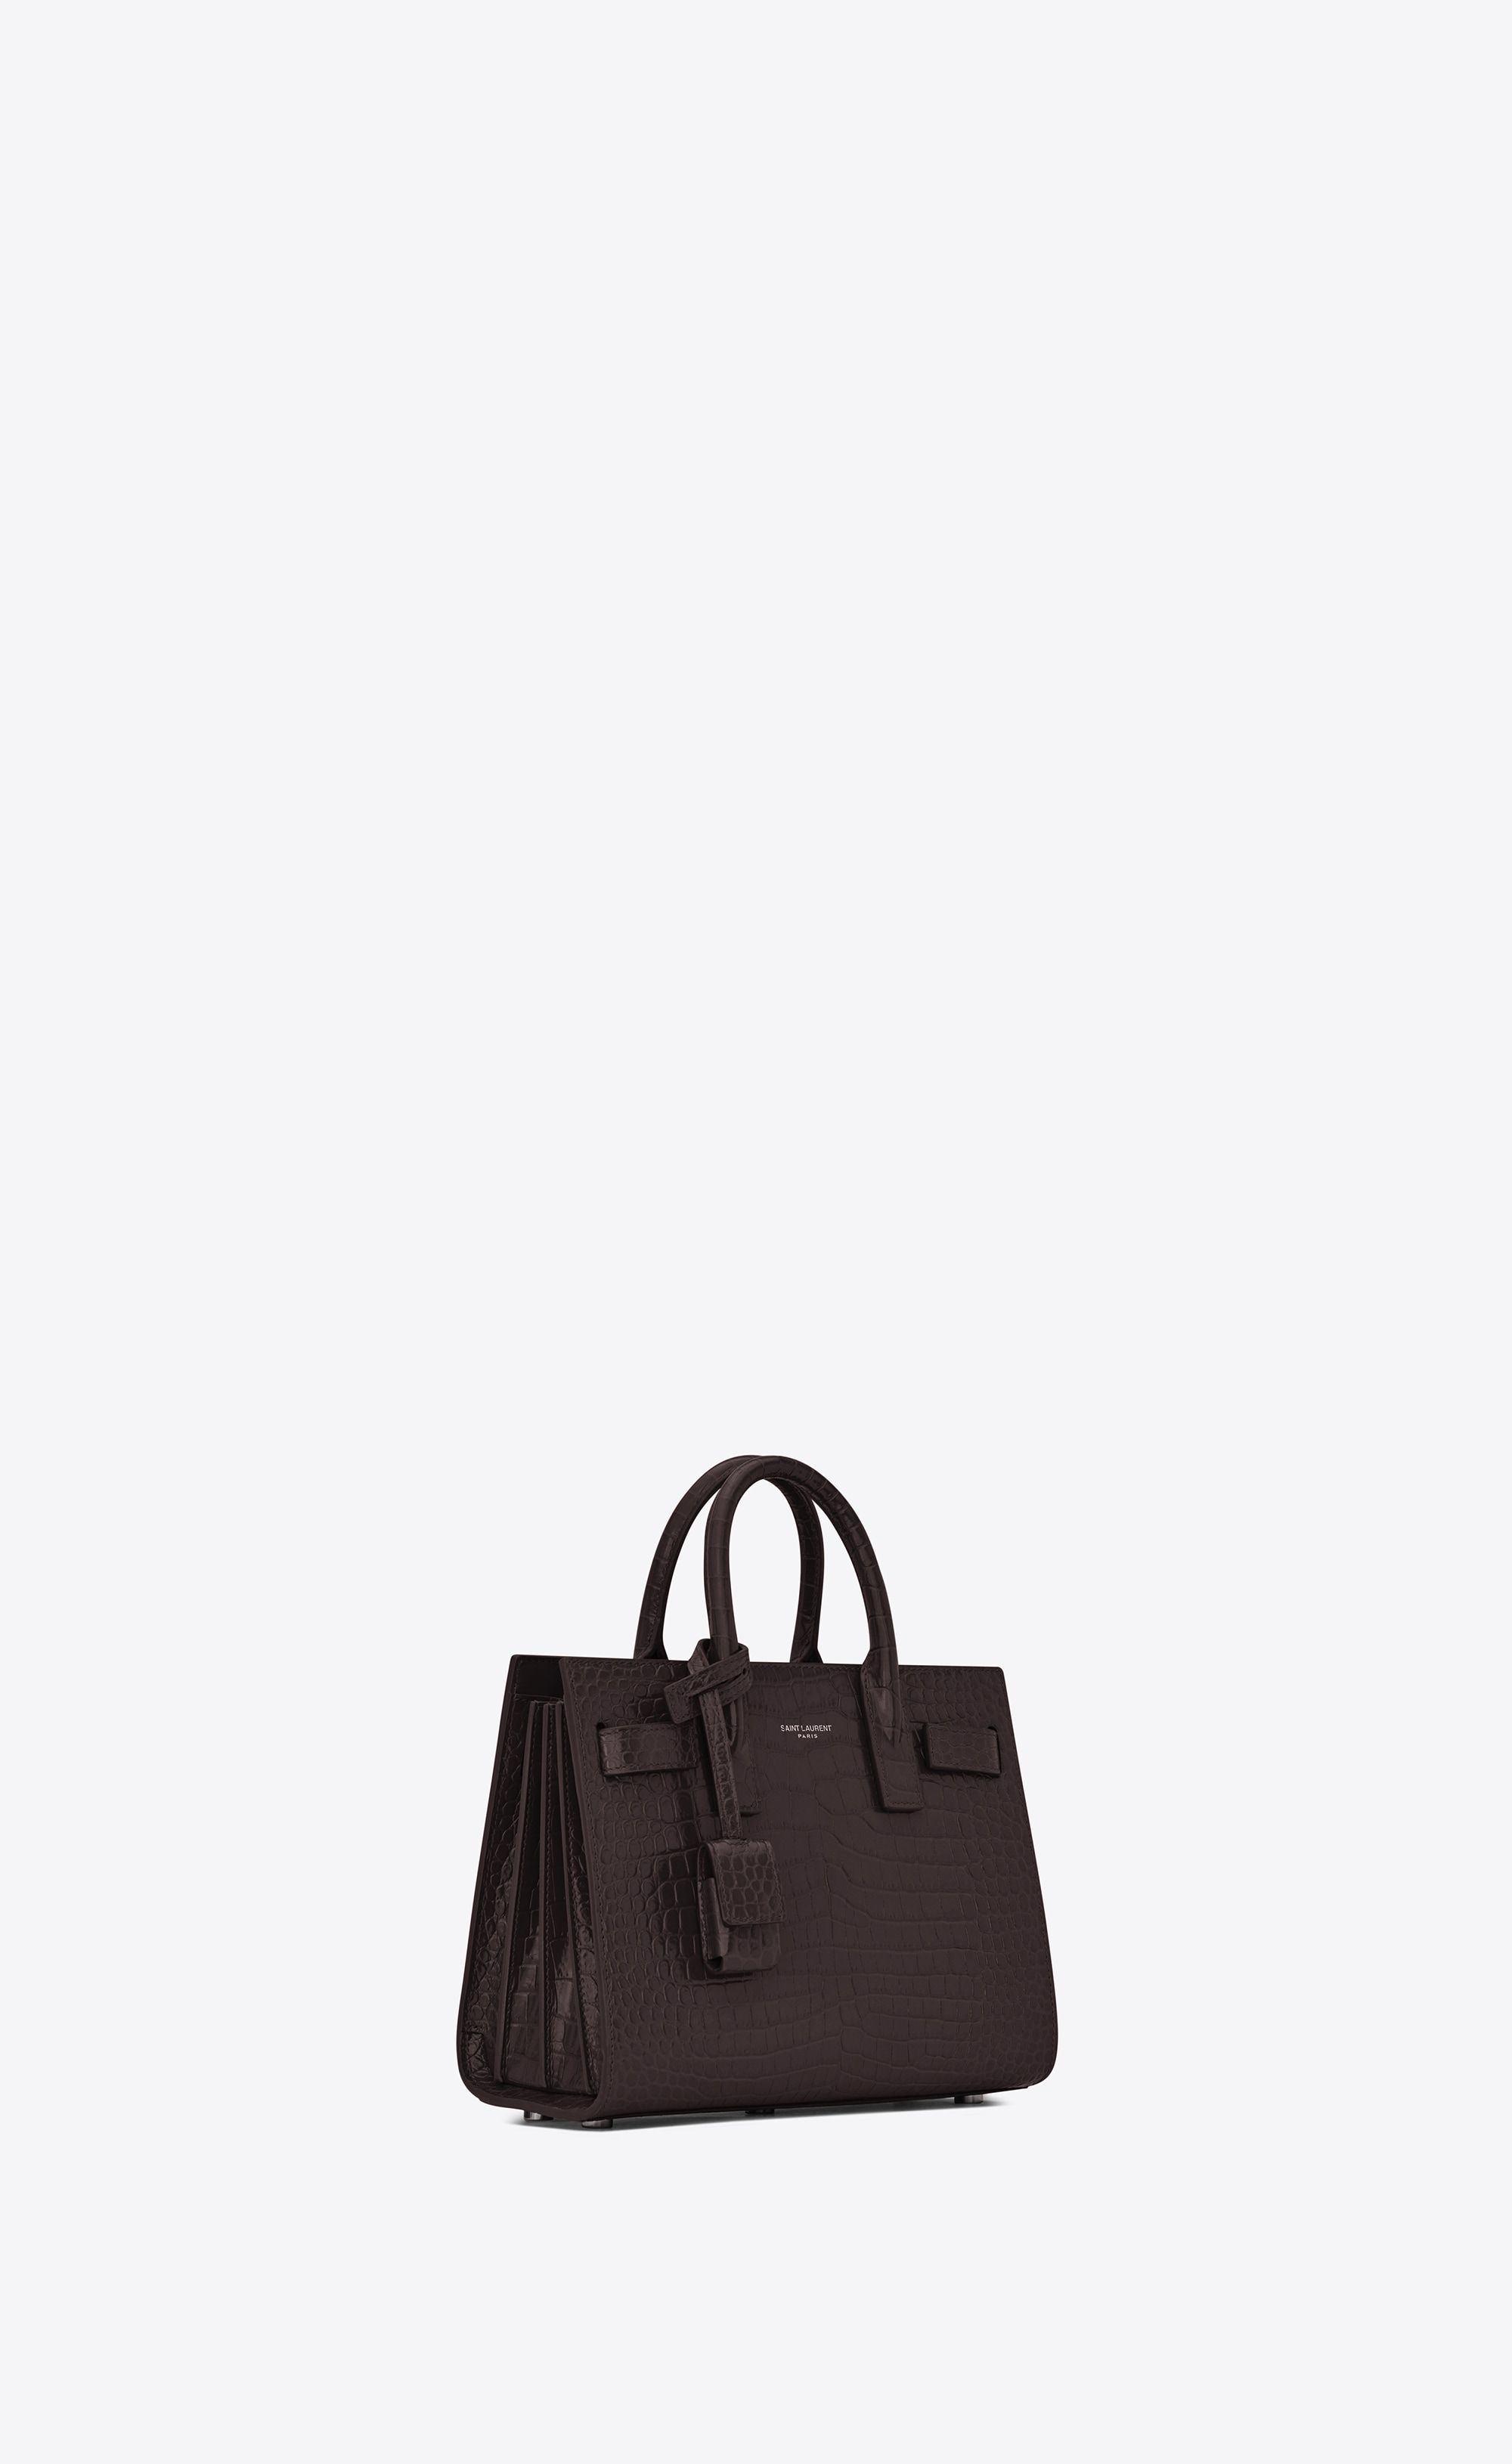 e04b76bfb0d80 Saint Laurent - Classic Nano Sac de Jour bag in black tulip crocodile  embossed shiny leather ( 1